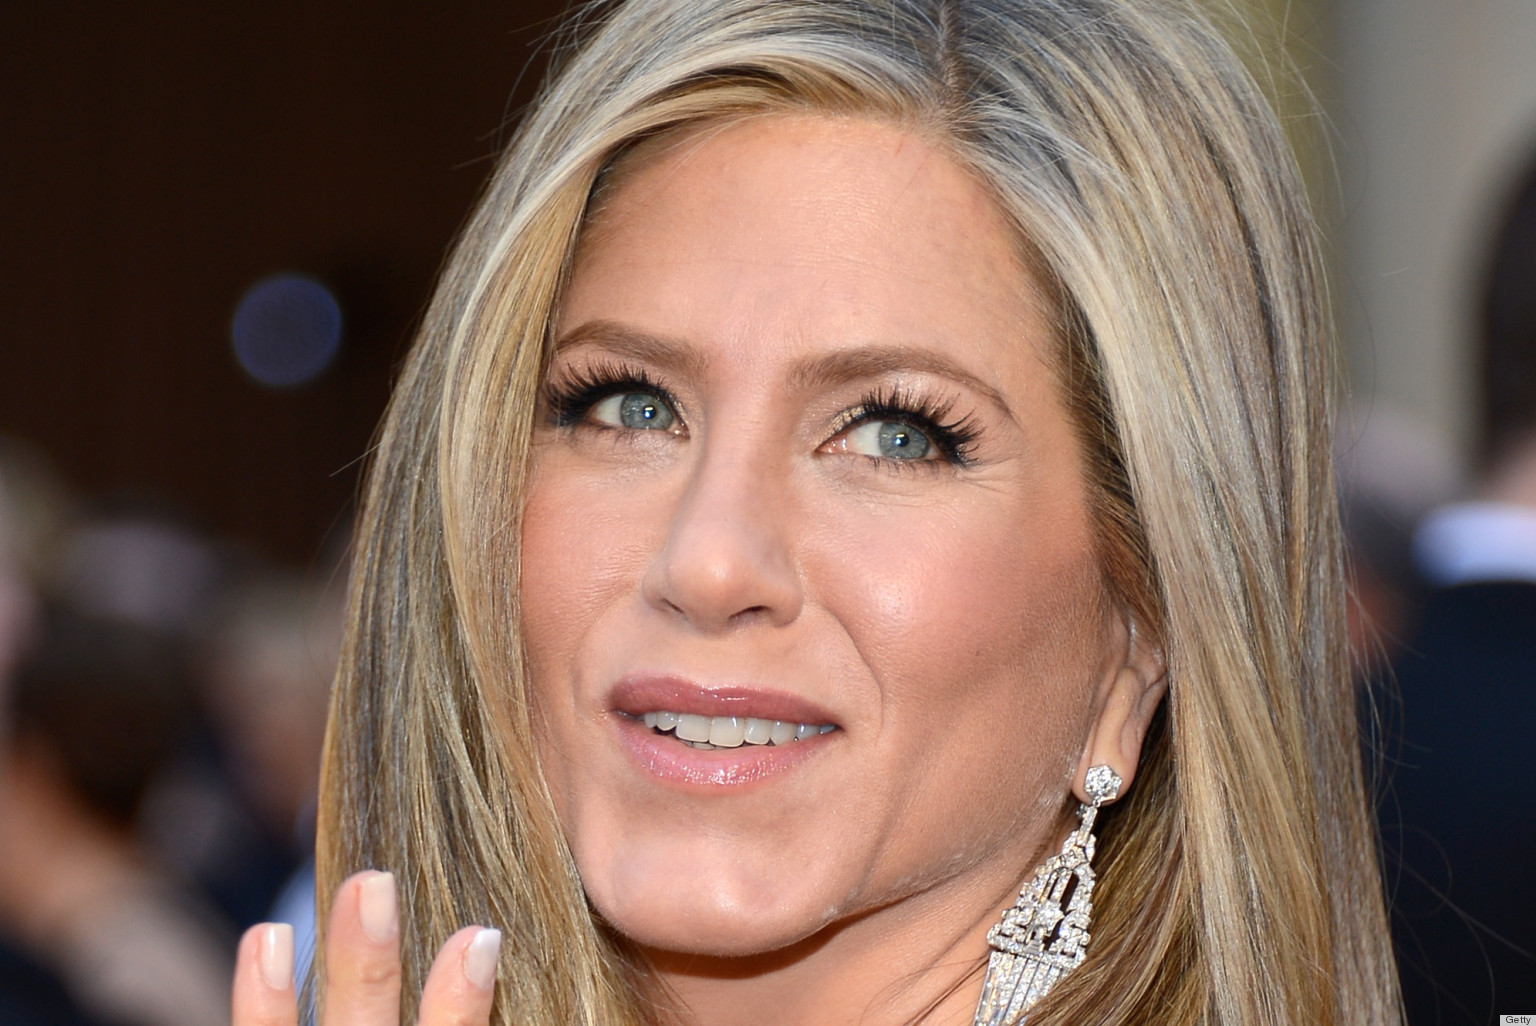 Jennifer Aniston's Oscar Dress 2013 Disappoints The Fashion Critics ... Jennifer Aniston